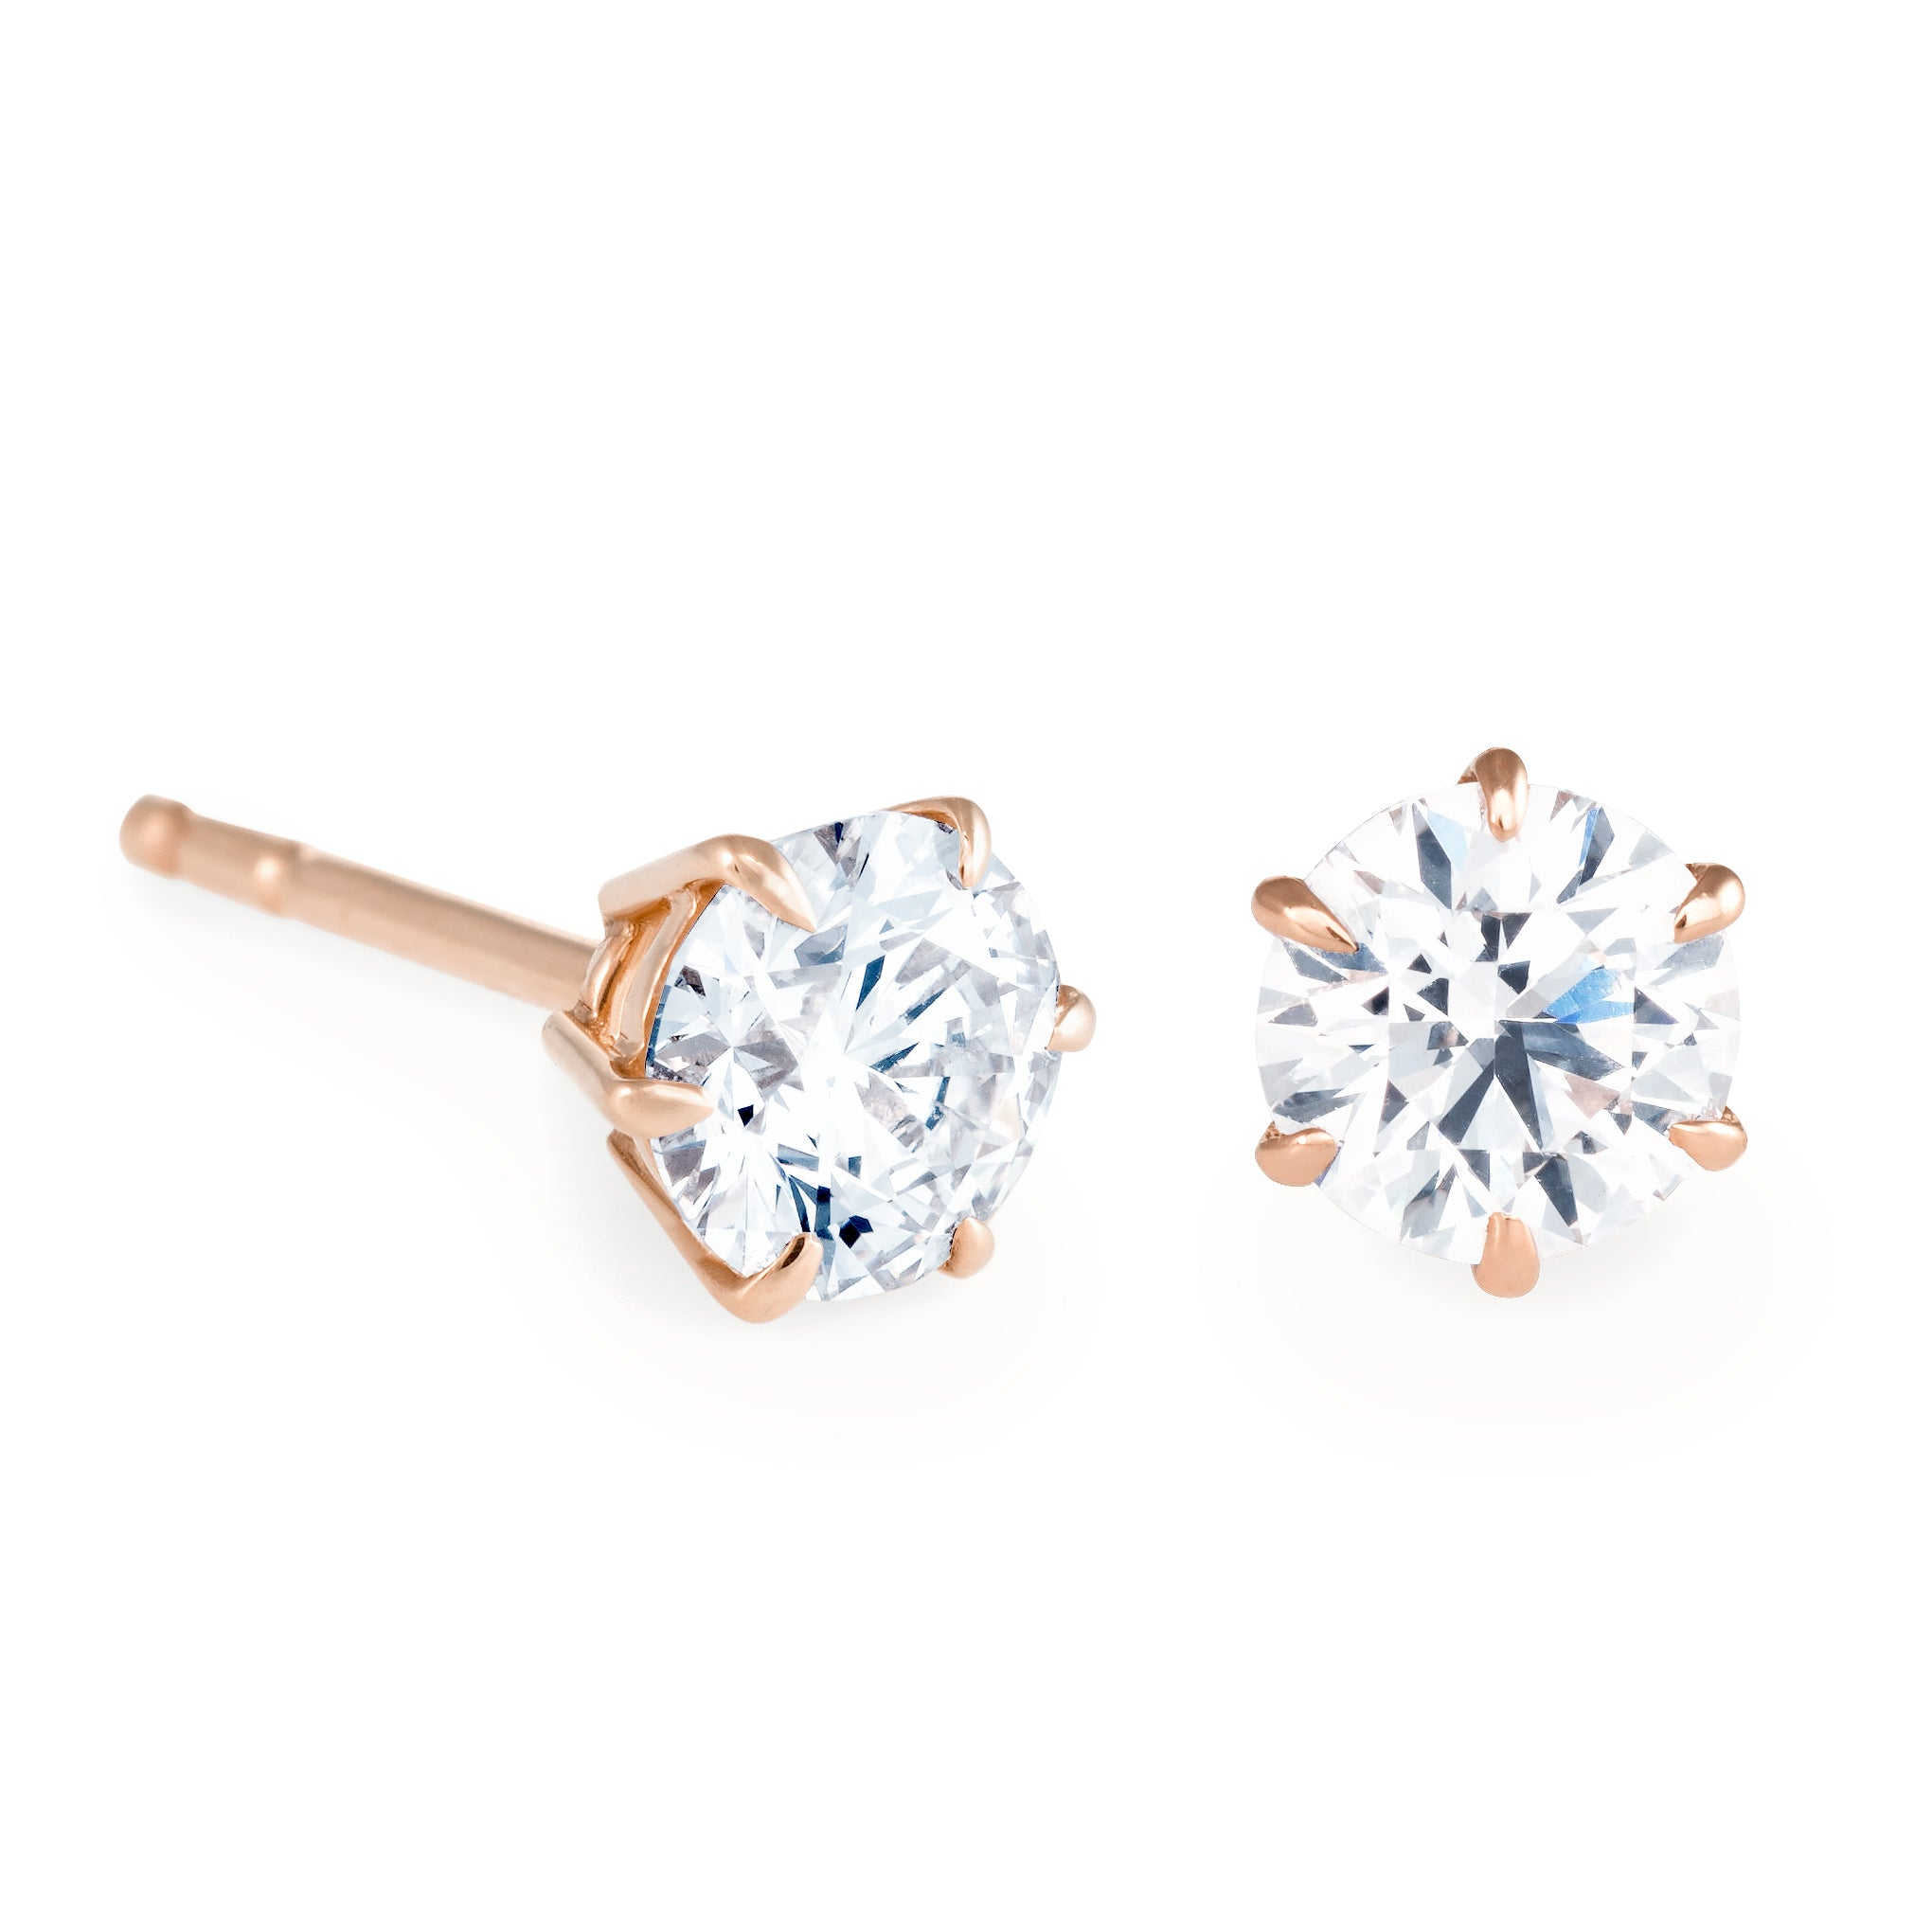 arrera diamonds with carrera add solitaire product canada earrings velazquez zquez vel diamond y yg